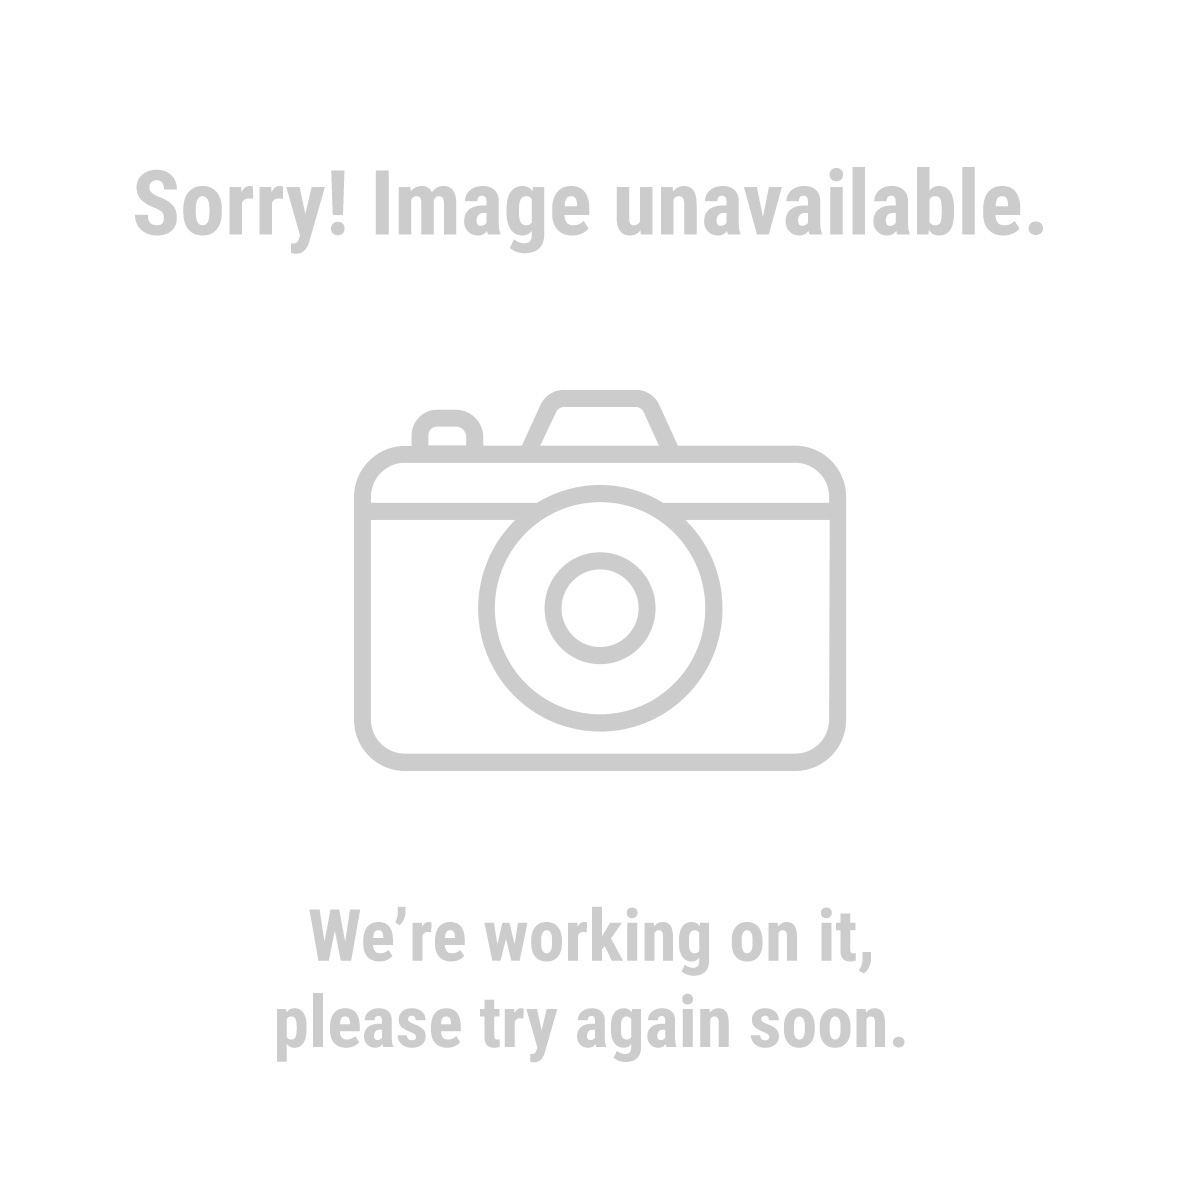 Admiral 62723 12 in. 60T Finishing Circular Saw Blade